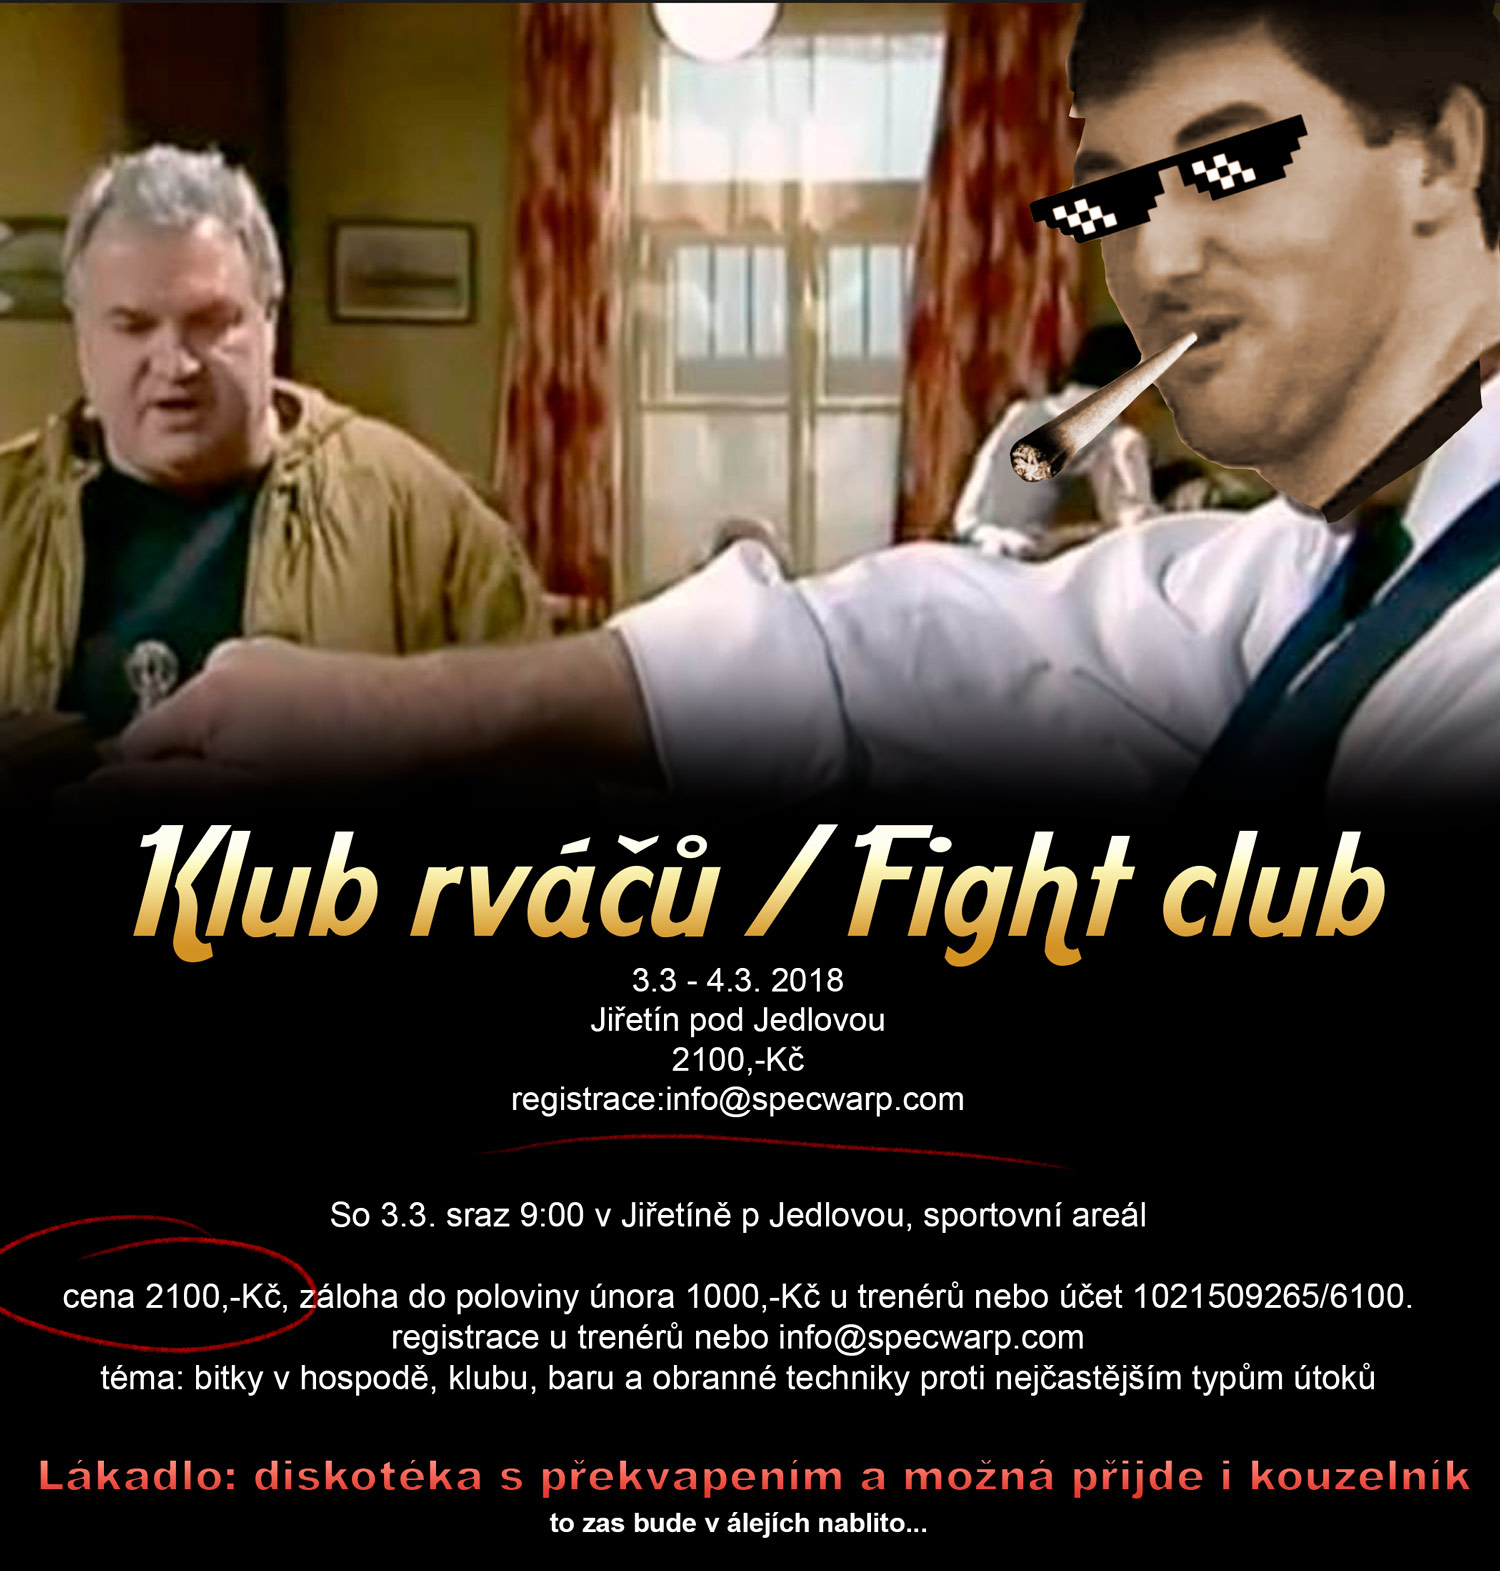 bar-fight-2018.jpg